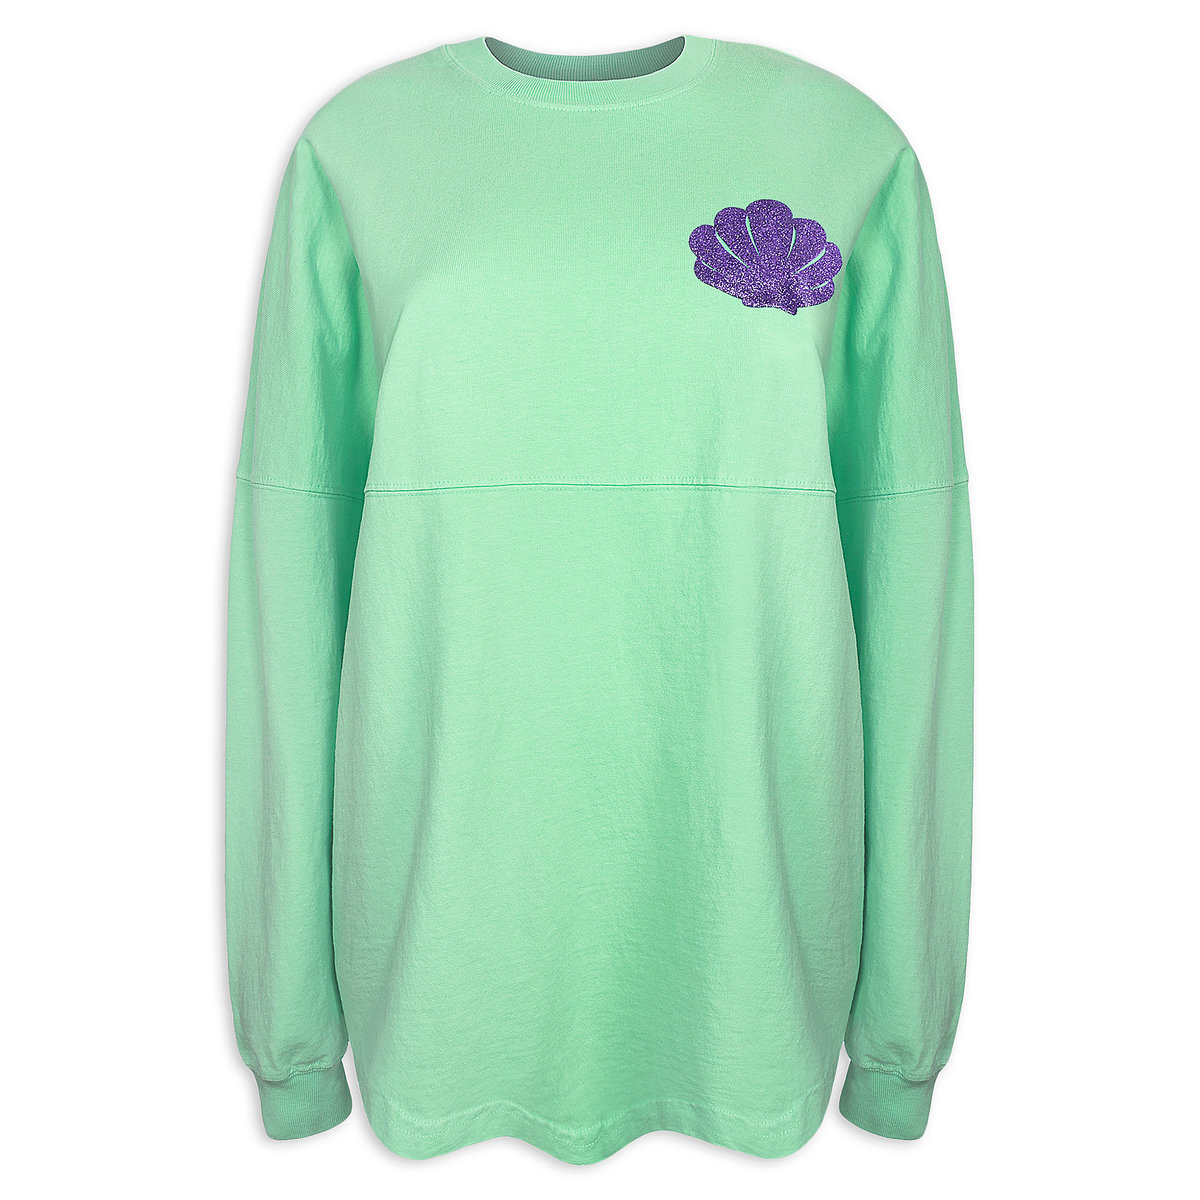 Product Image of Ariel Spirit Jersey for Adults - Disneyland # 2